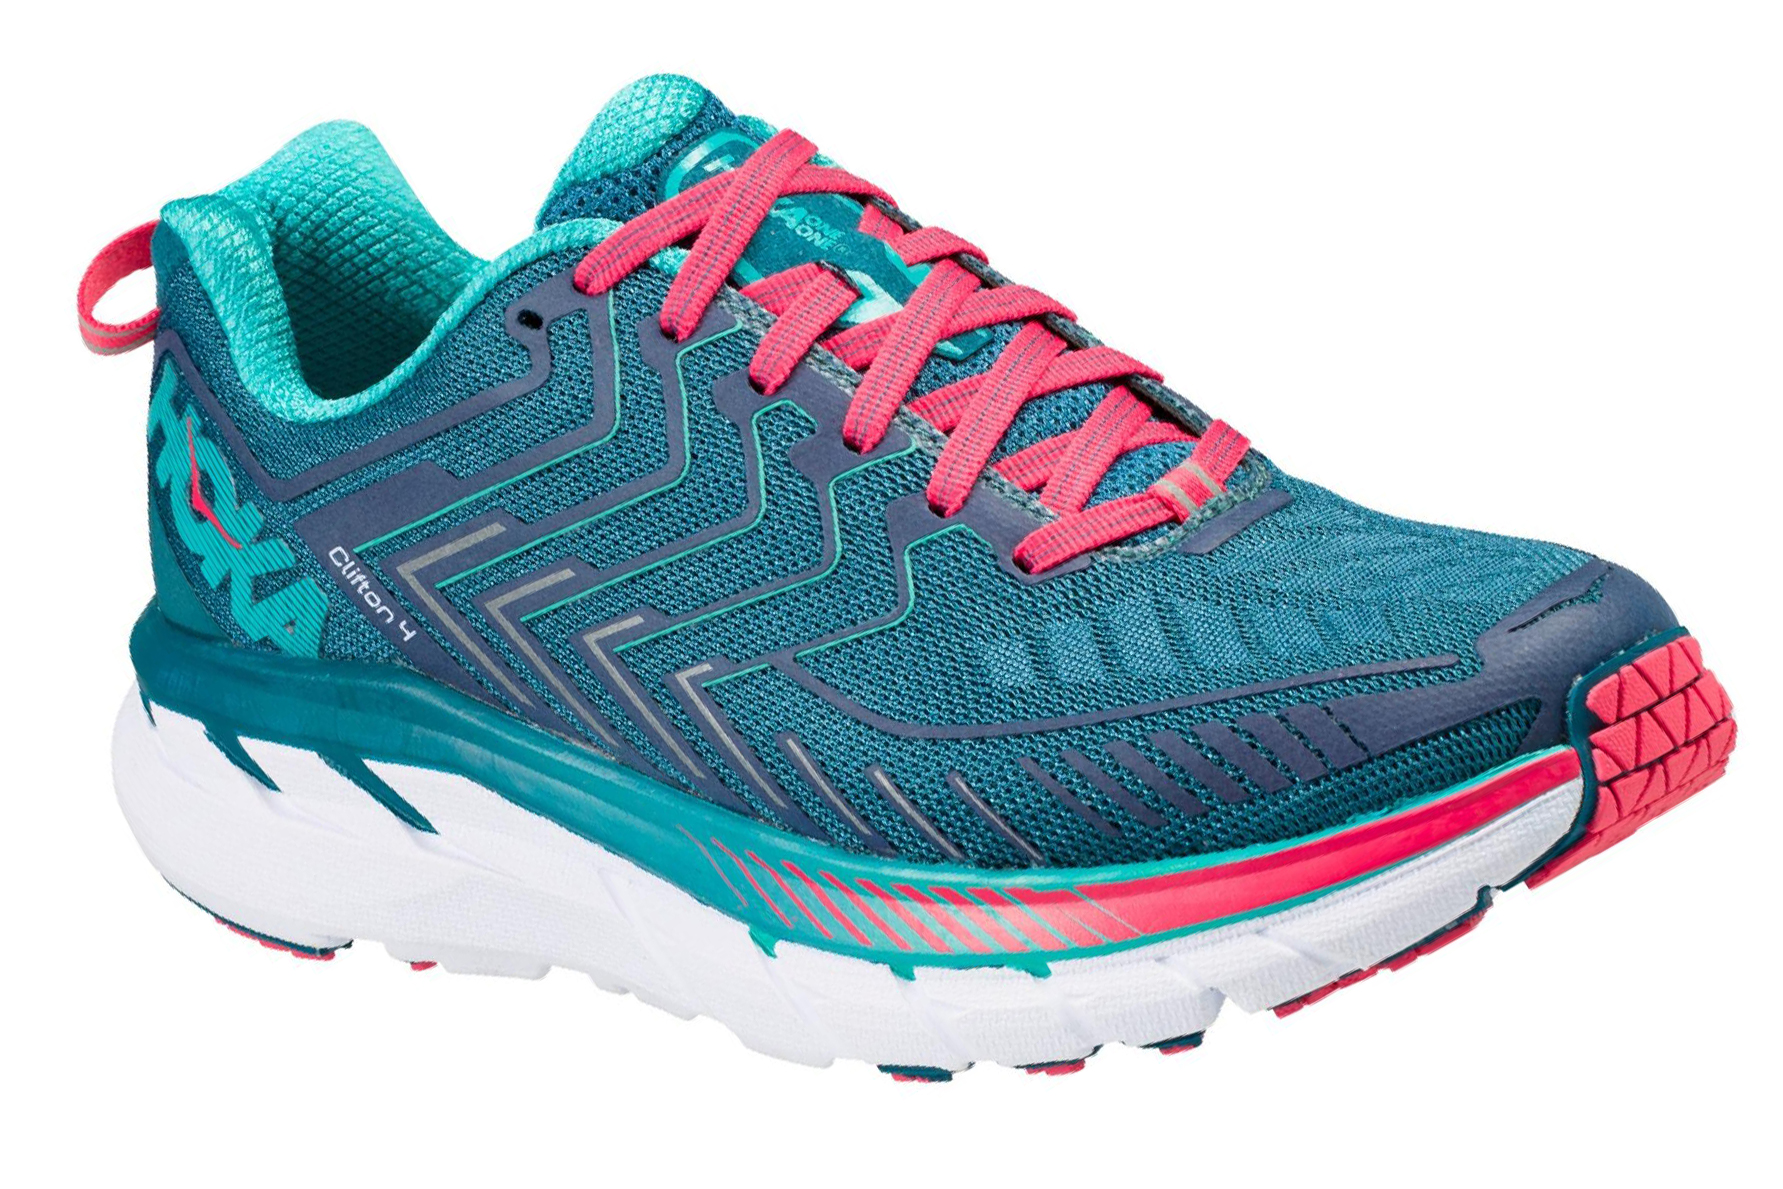 comforter hoka shoes bondi for workout s strategist and most running comfortable women article one best